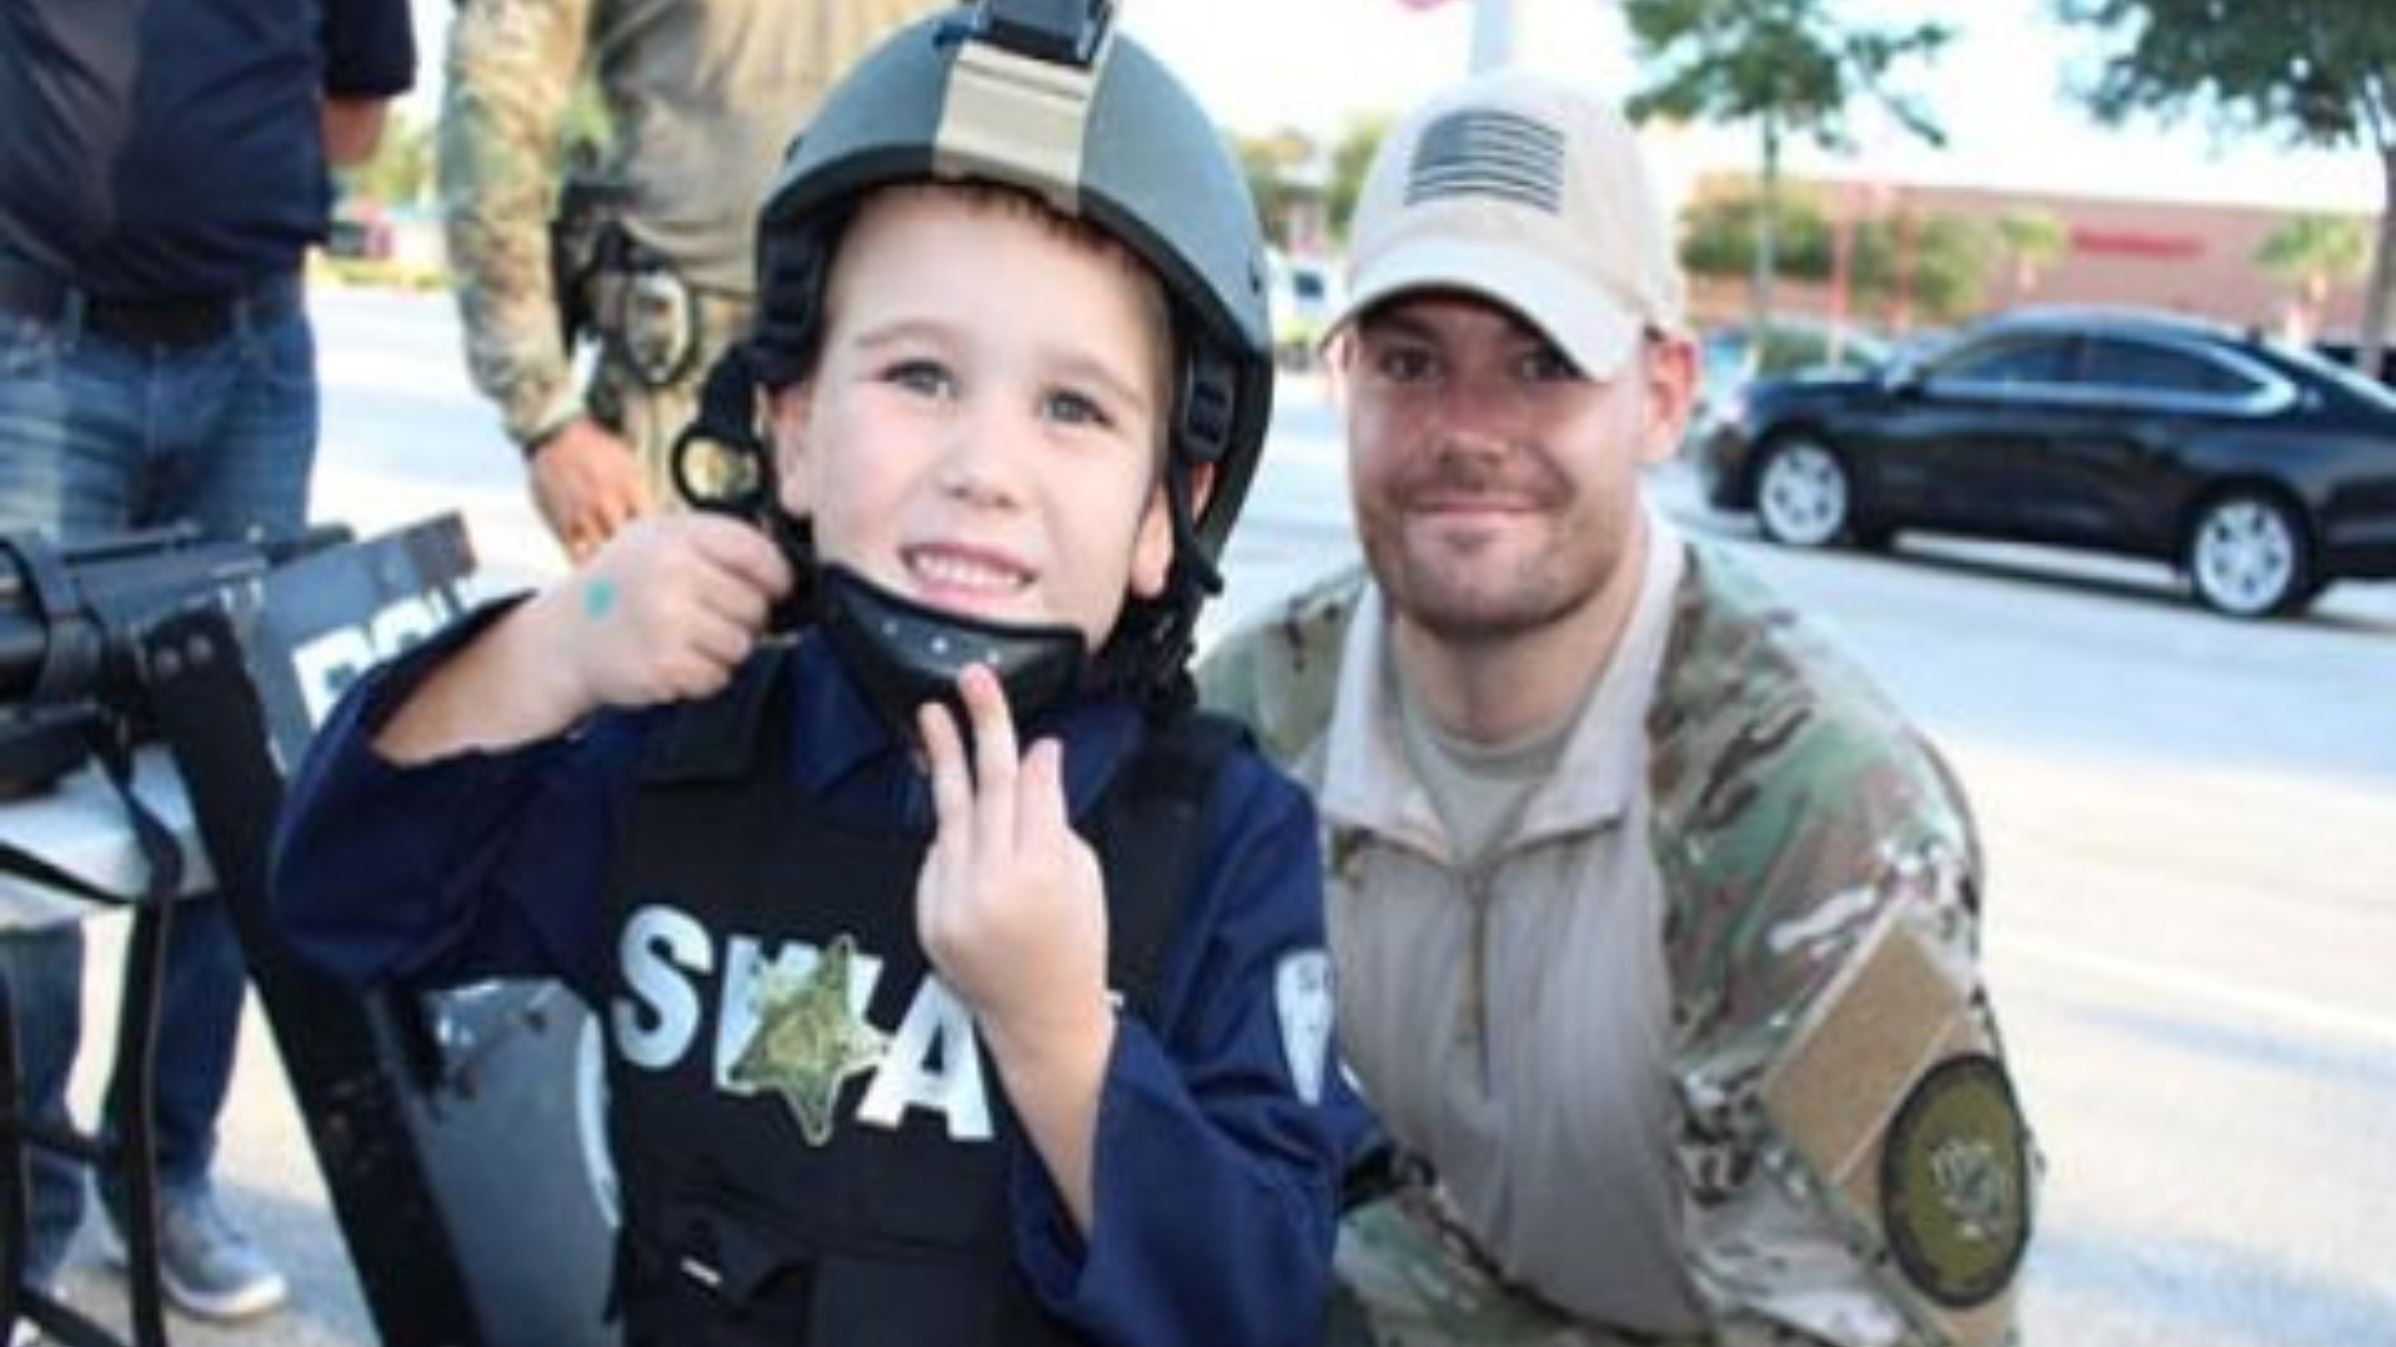 SWAT Officer with a Child Dressed in SWAT Gear